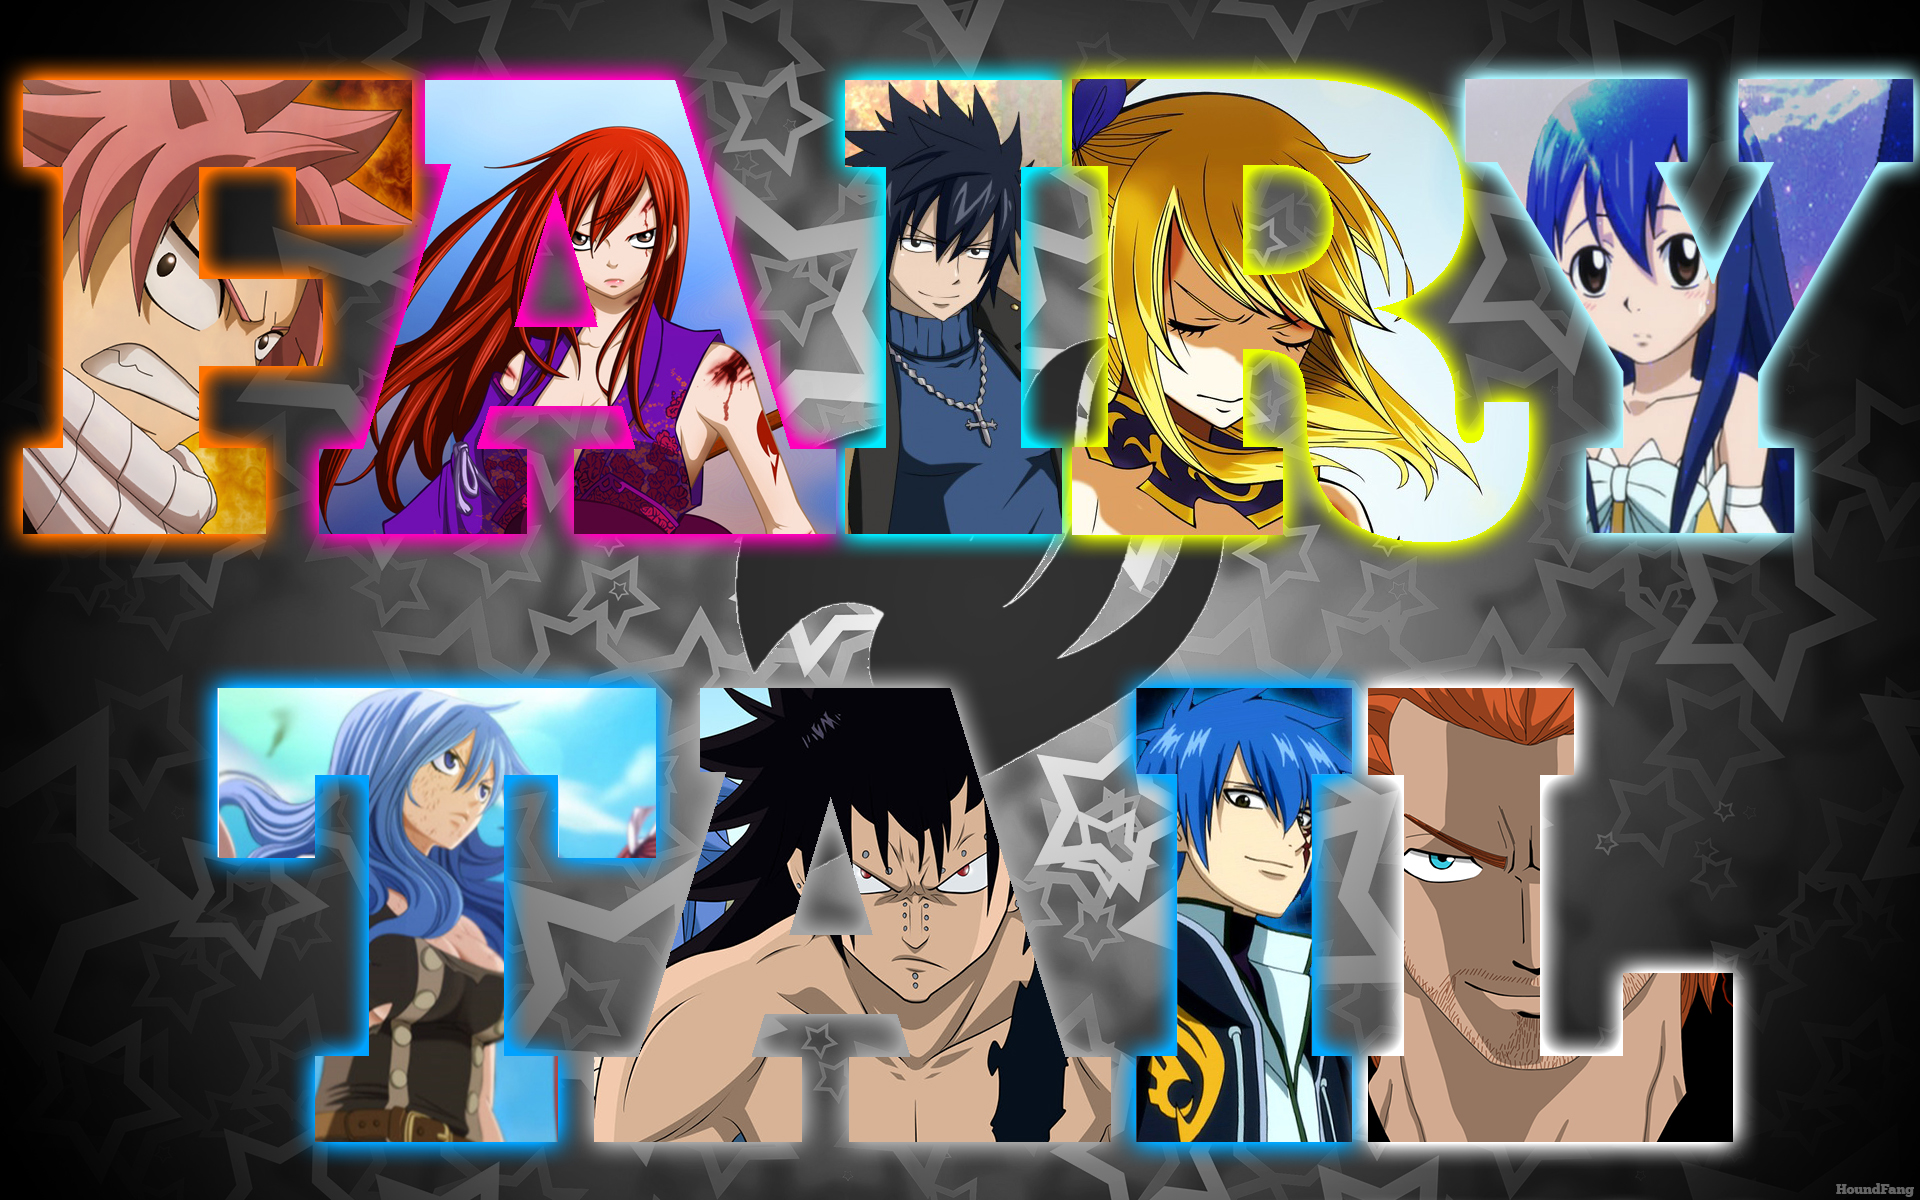 Fairy Tail Wallpapers fairy tail 35304358 1920 1200 1920x1200